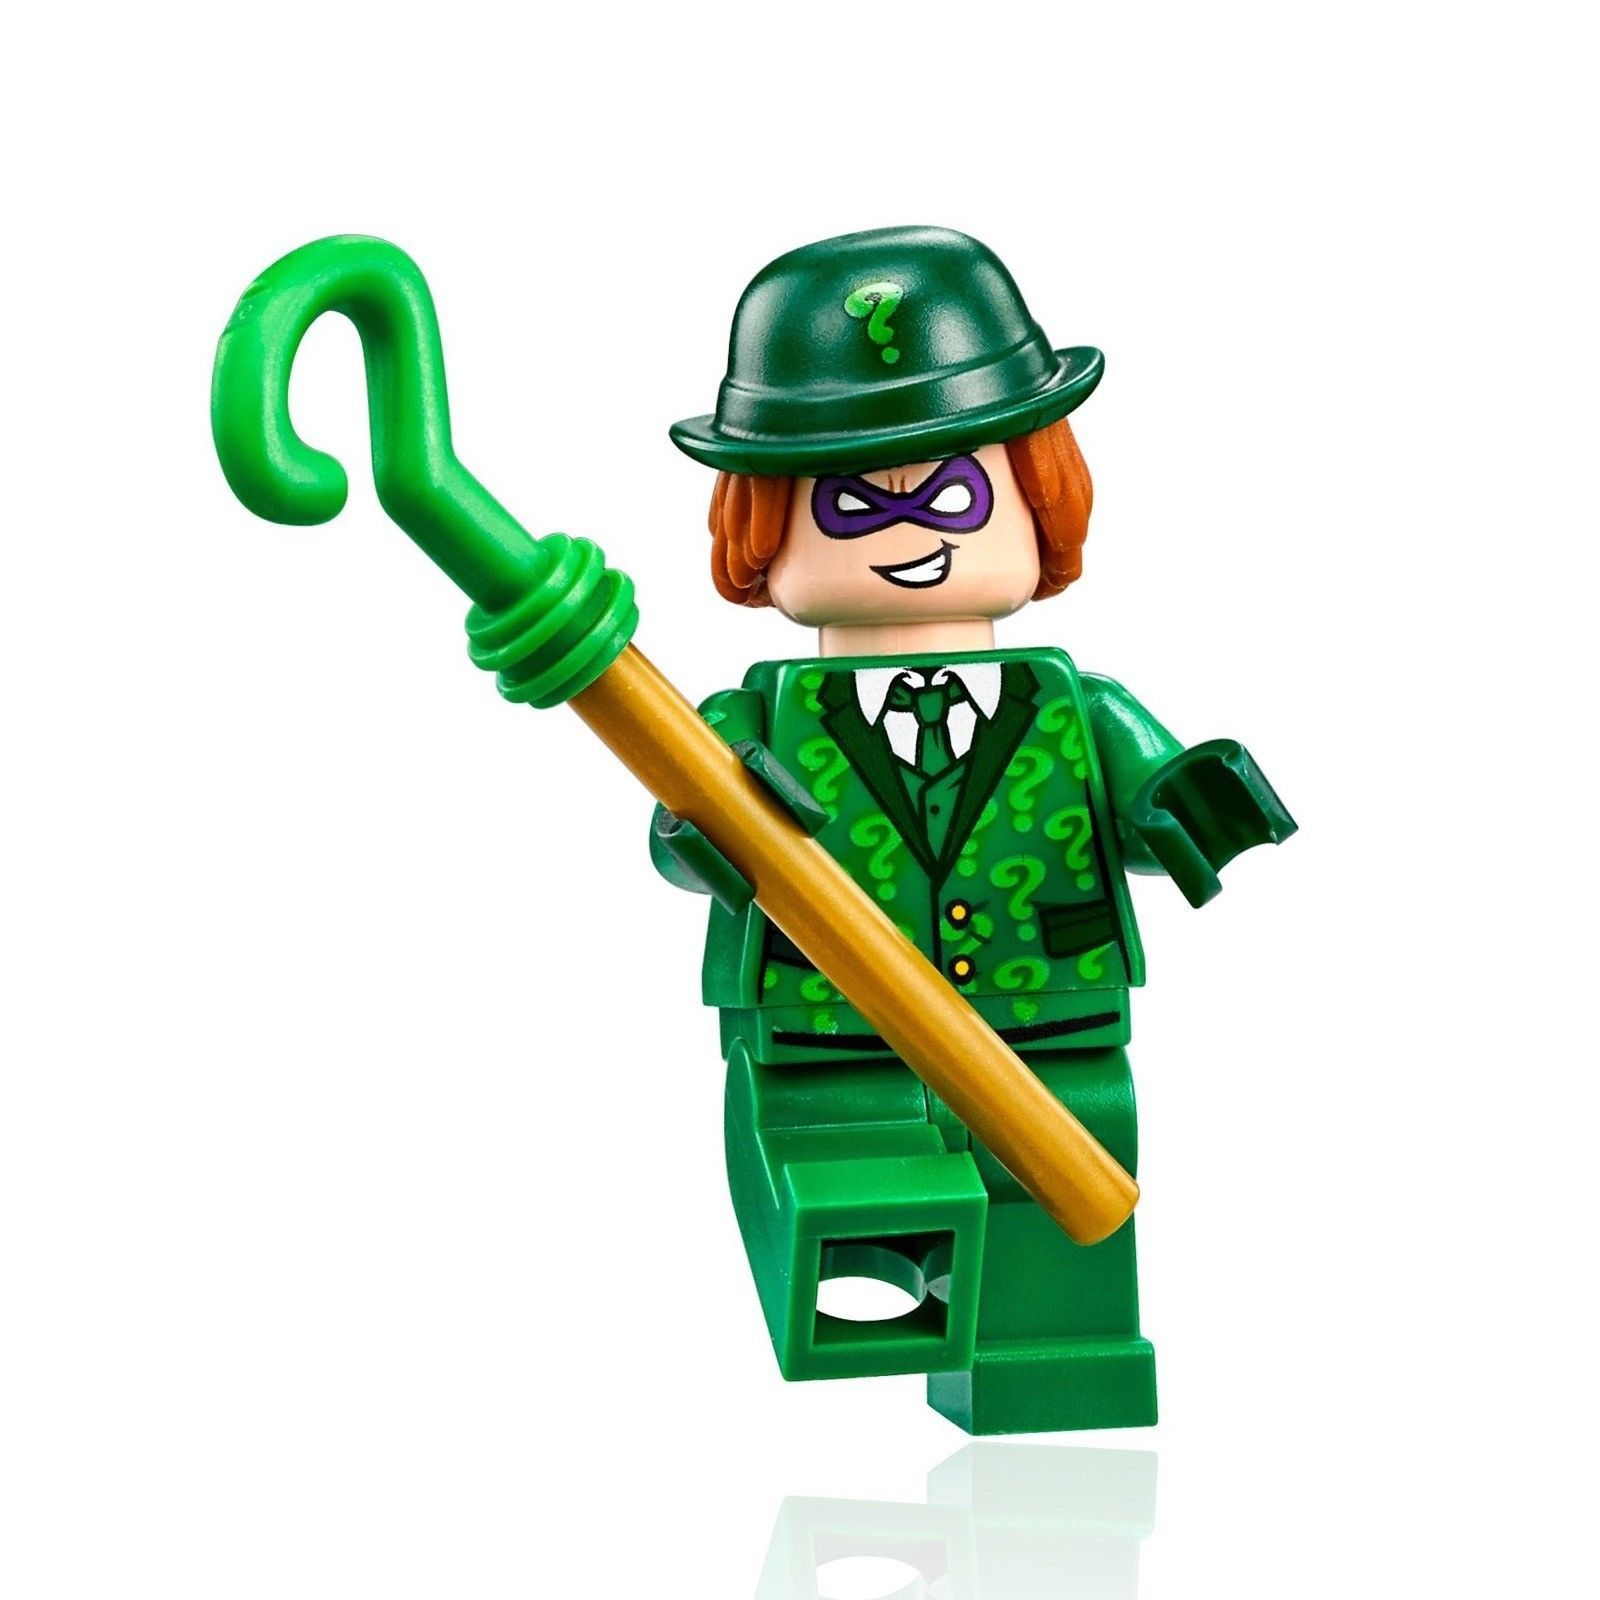 11.95 The Lego Batman Movie Minifigure The Riddler